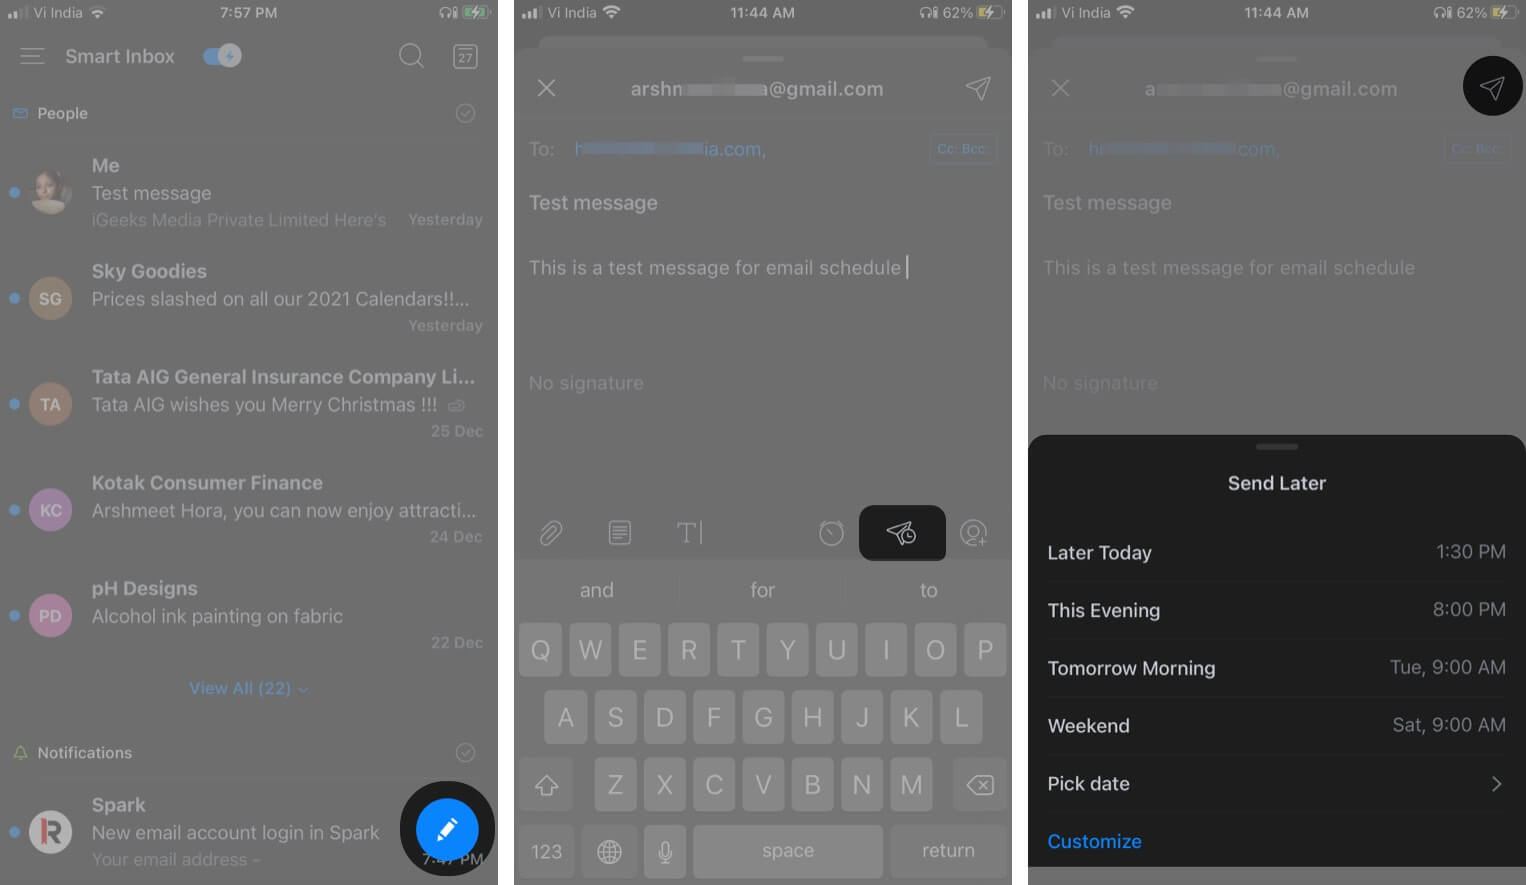 Schedule emails on iPhone and iPad via Spark app